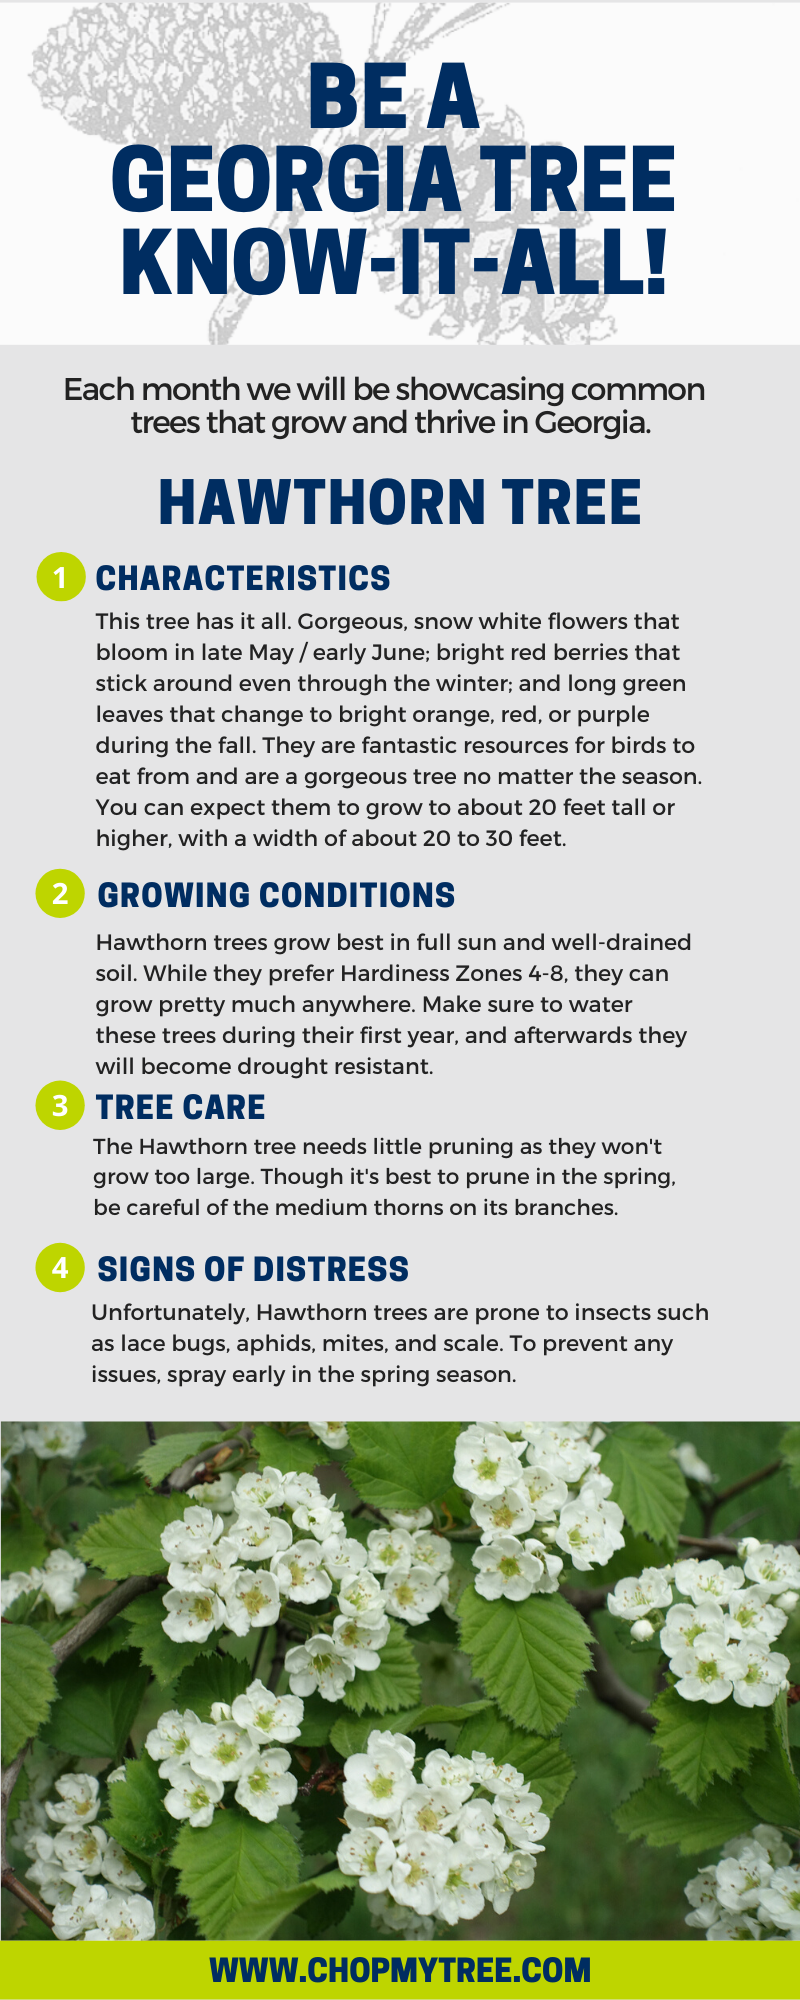 Hawthorn Tree of the Month Infographic.